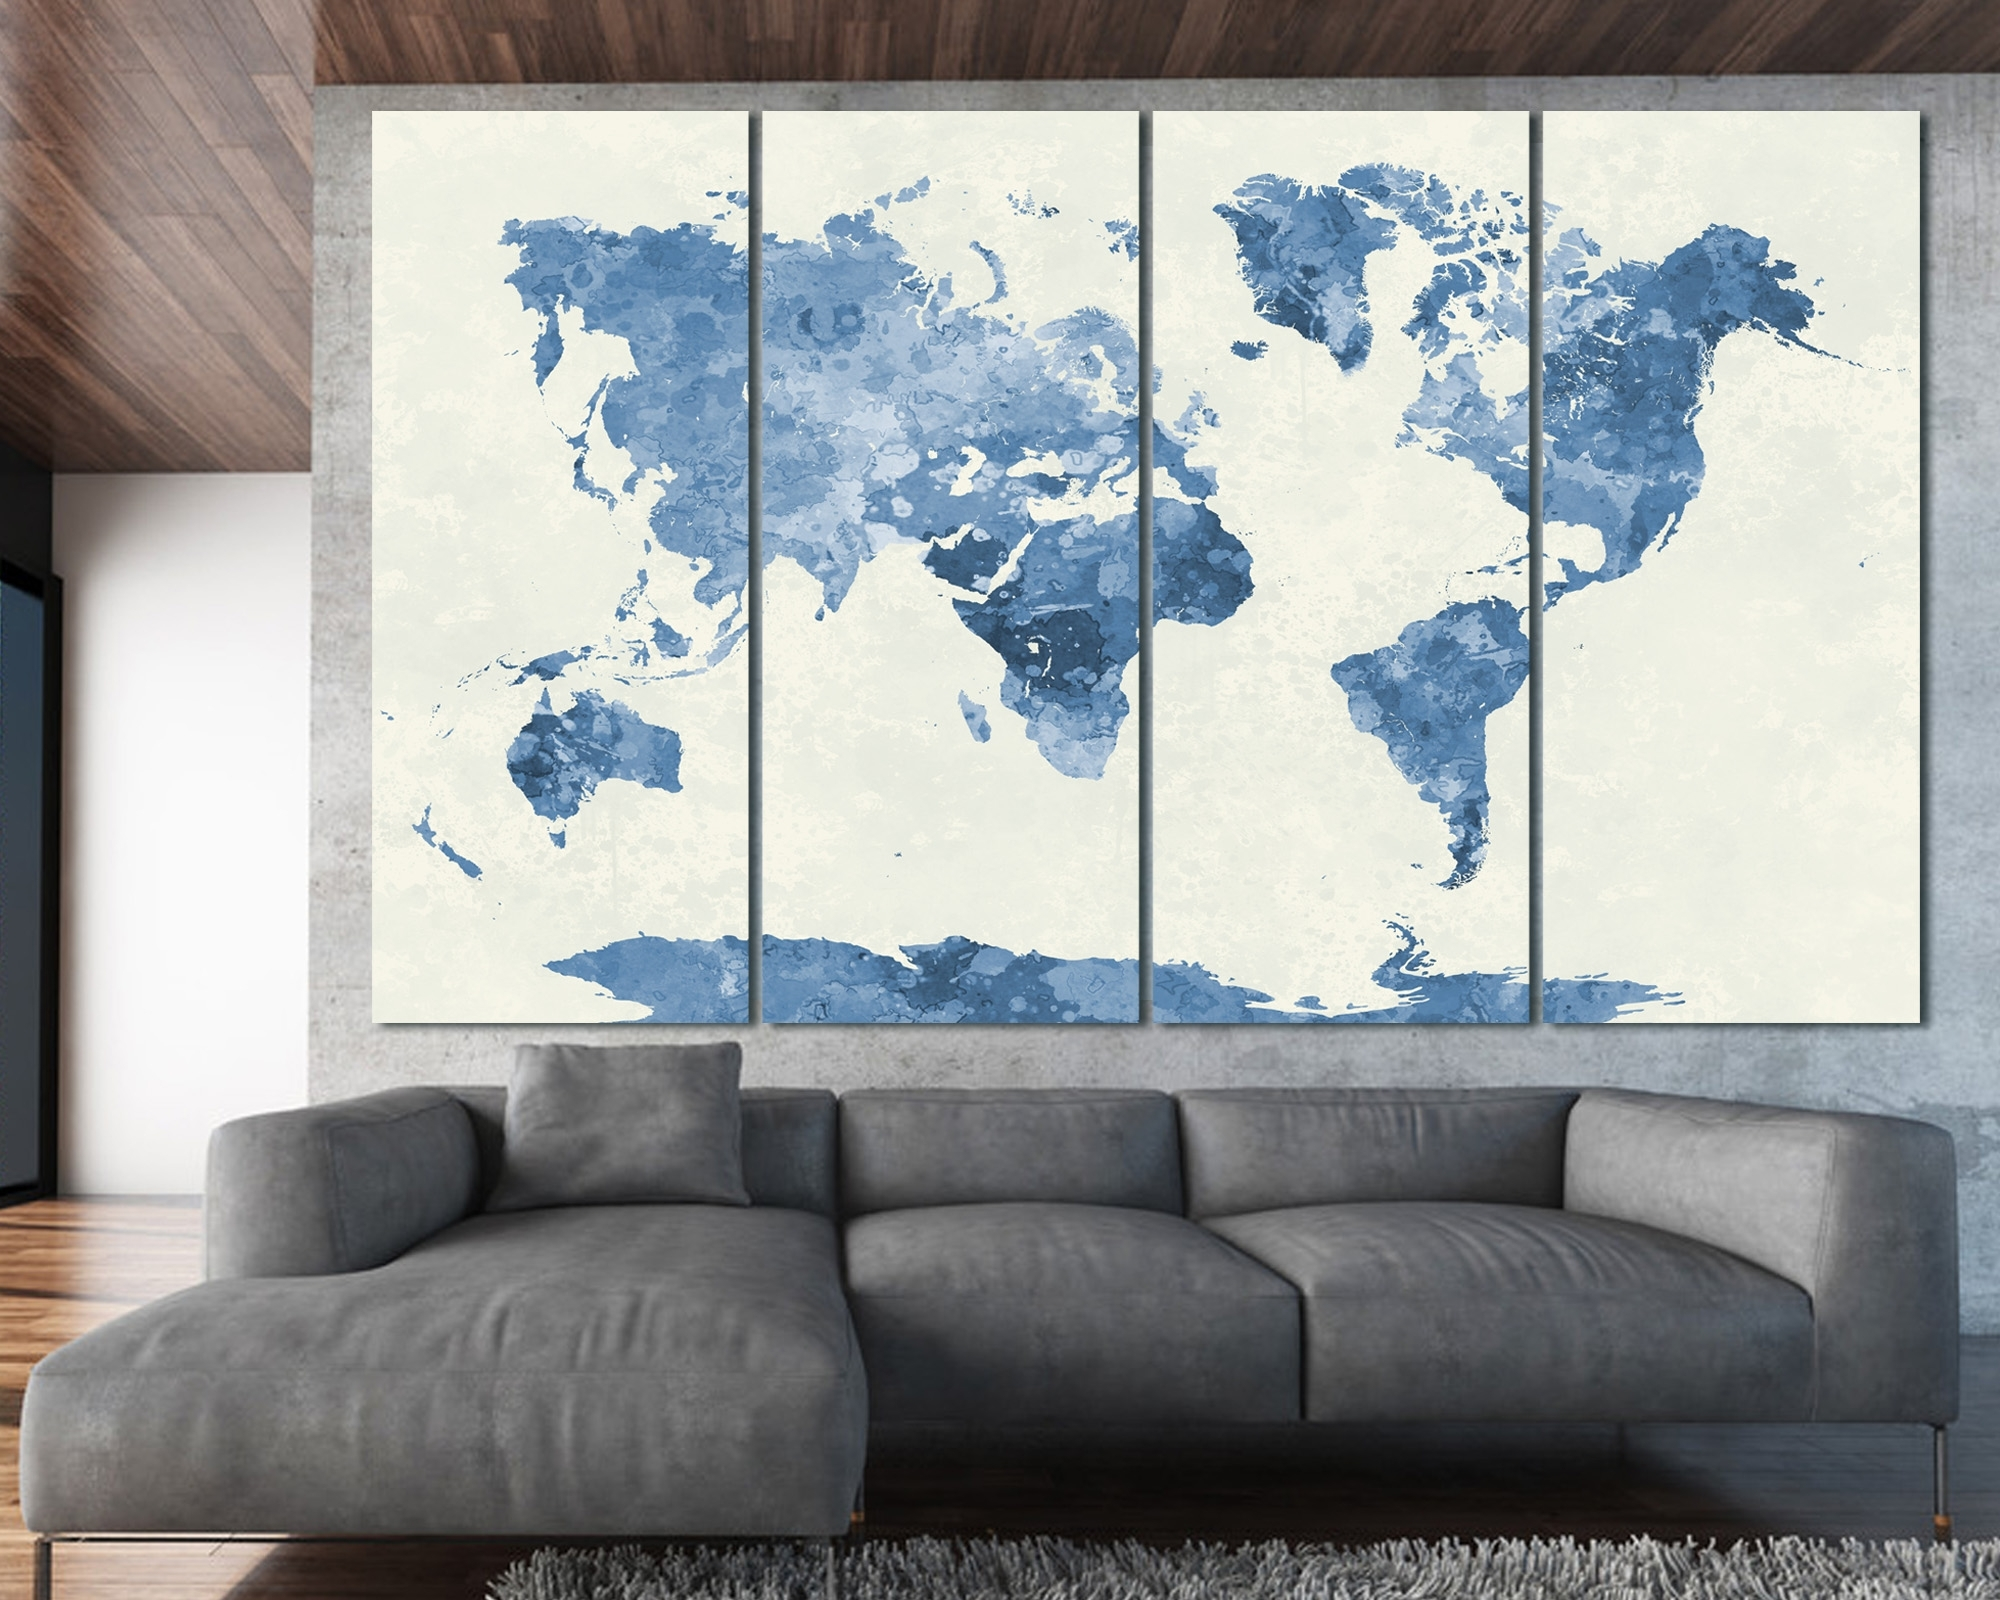 Navy Blue Watercolor World Map Print At Texelprintart Within Most Current Navy Blue Wall Art (View 8 of 15)